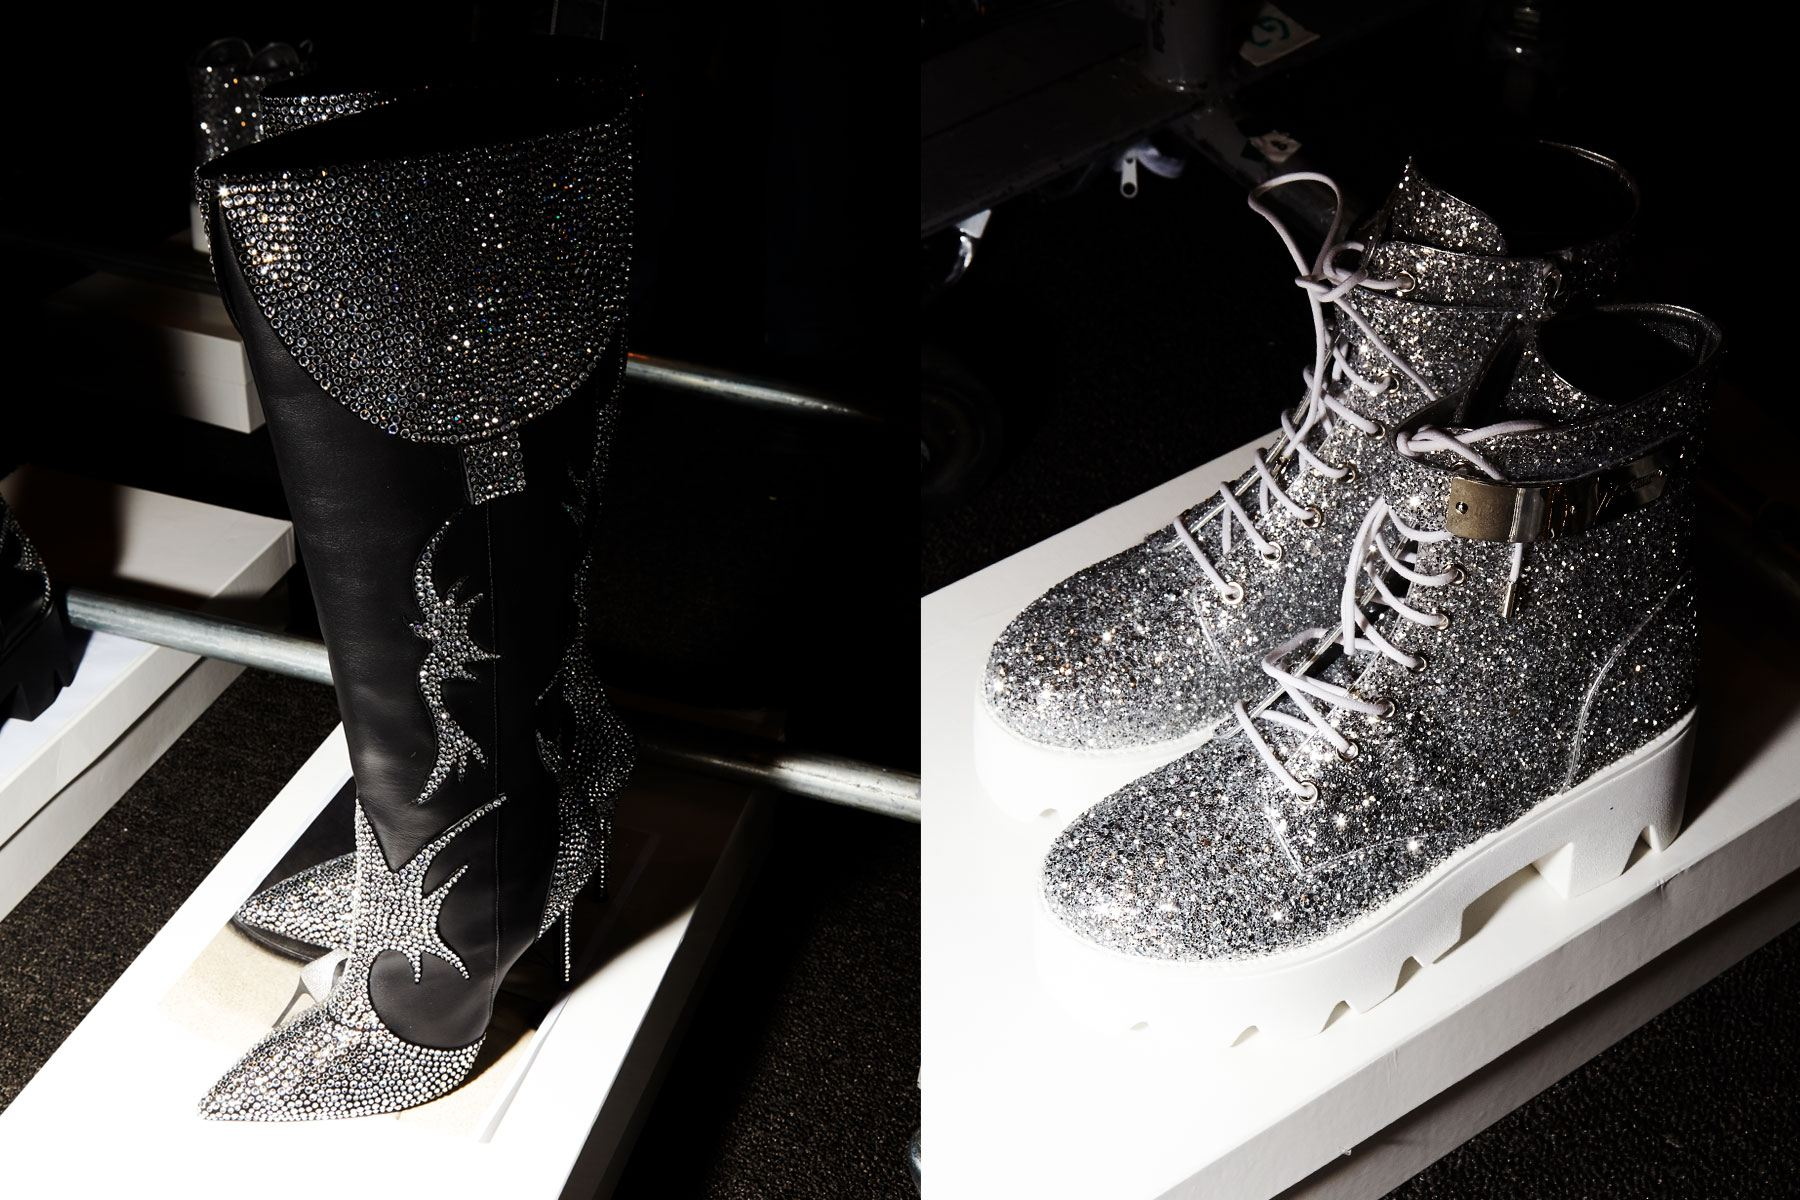 Glitter Giuseppe Zanotti boots backstage at Christian Cowan for Spring/Summer 2019. Photography by Alexander Thompson for Ponyboy magazine.